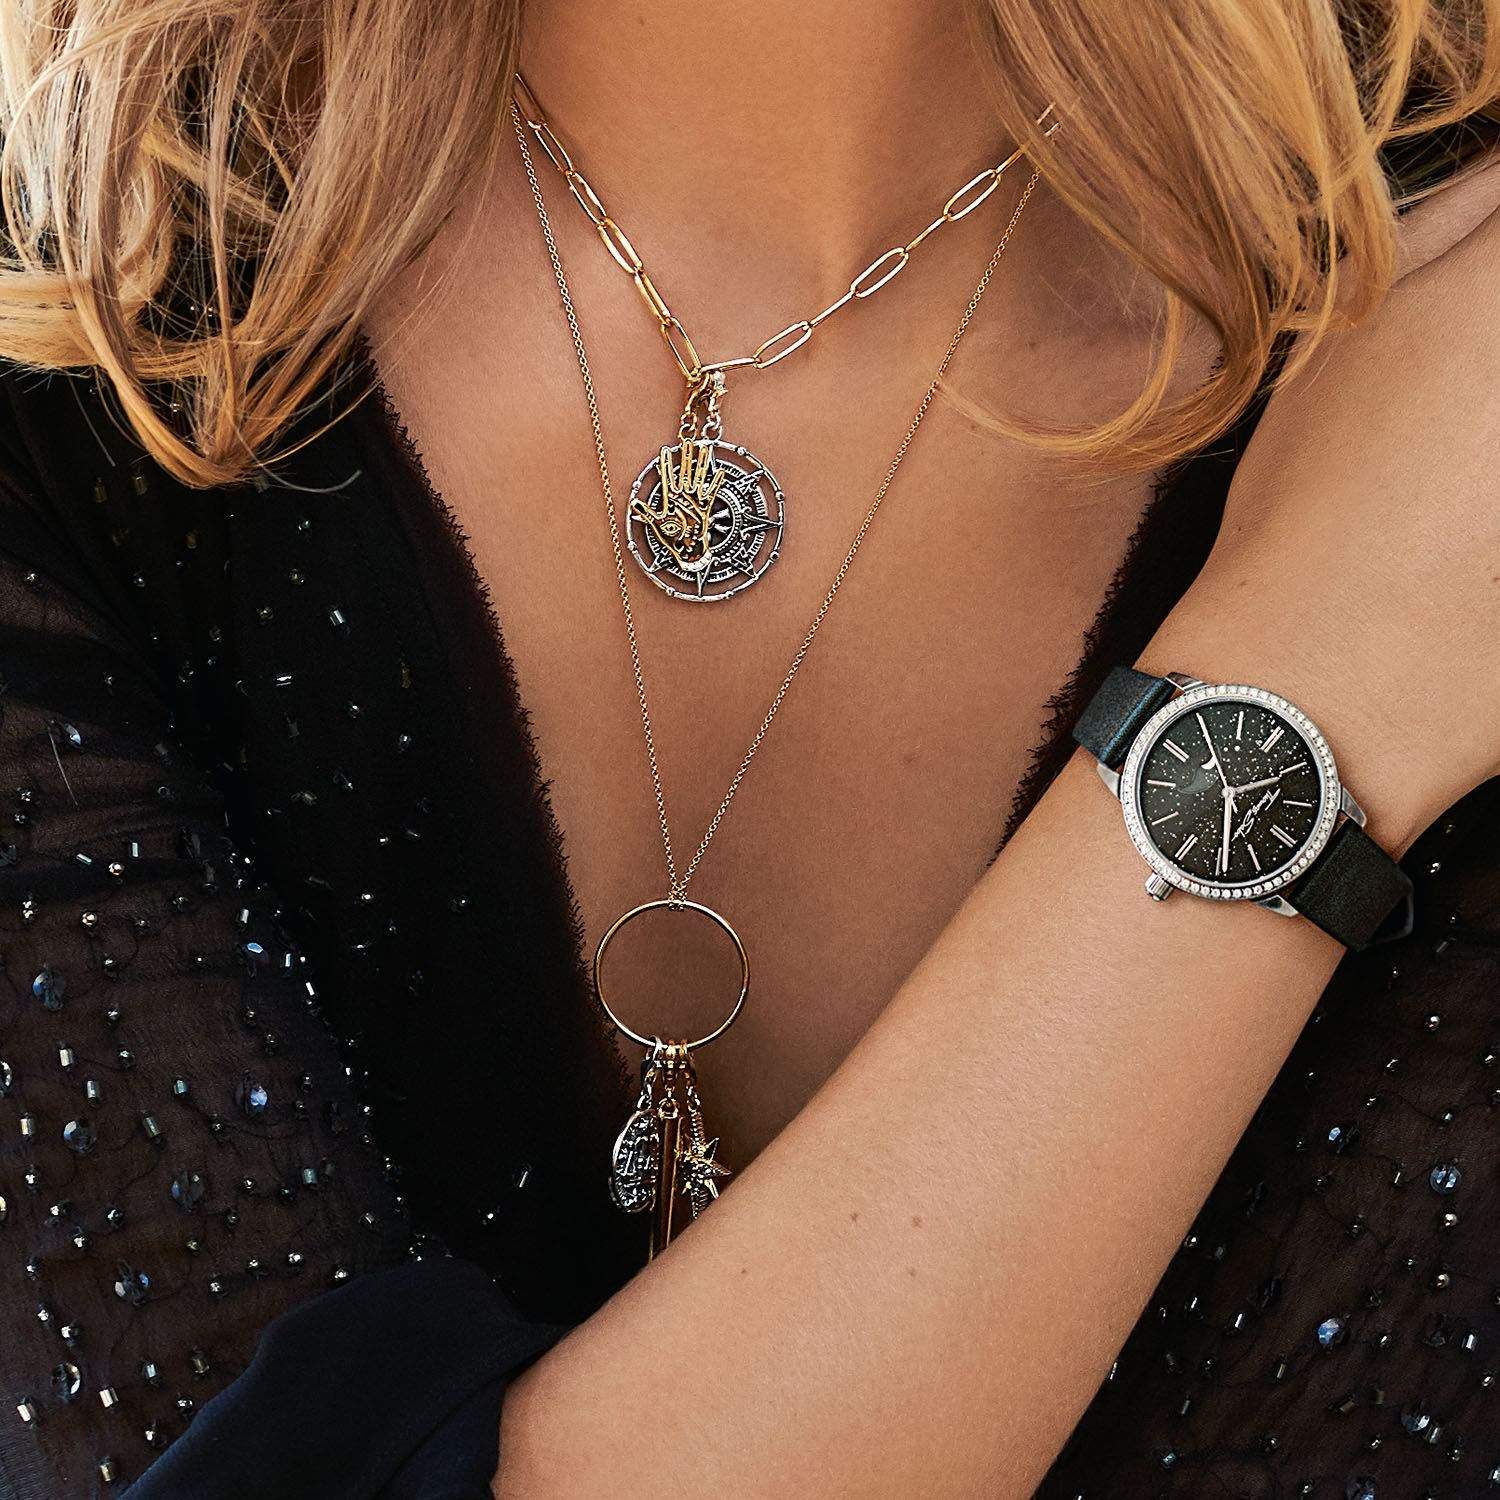 Our Life Is Influenced By The Moon Thomas Sabo Charms Spiritual Jewelry Sparkle Jewelry